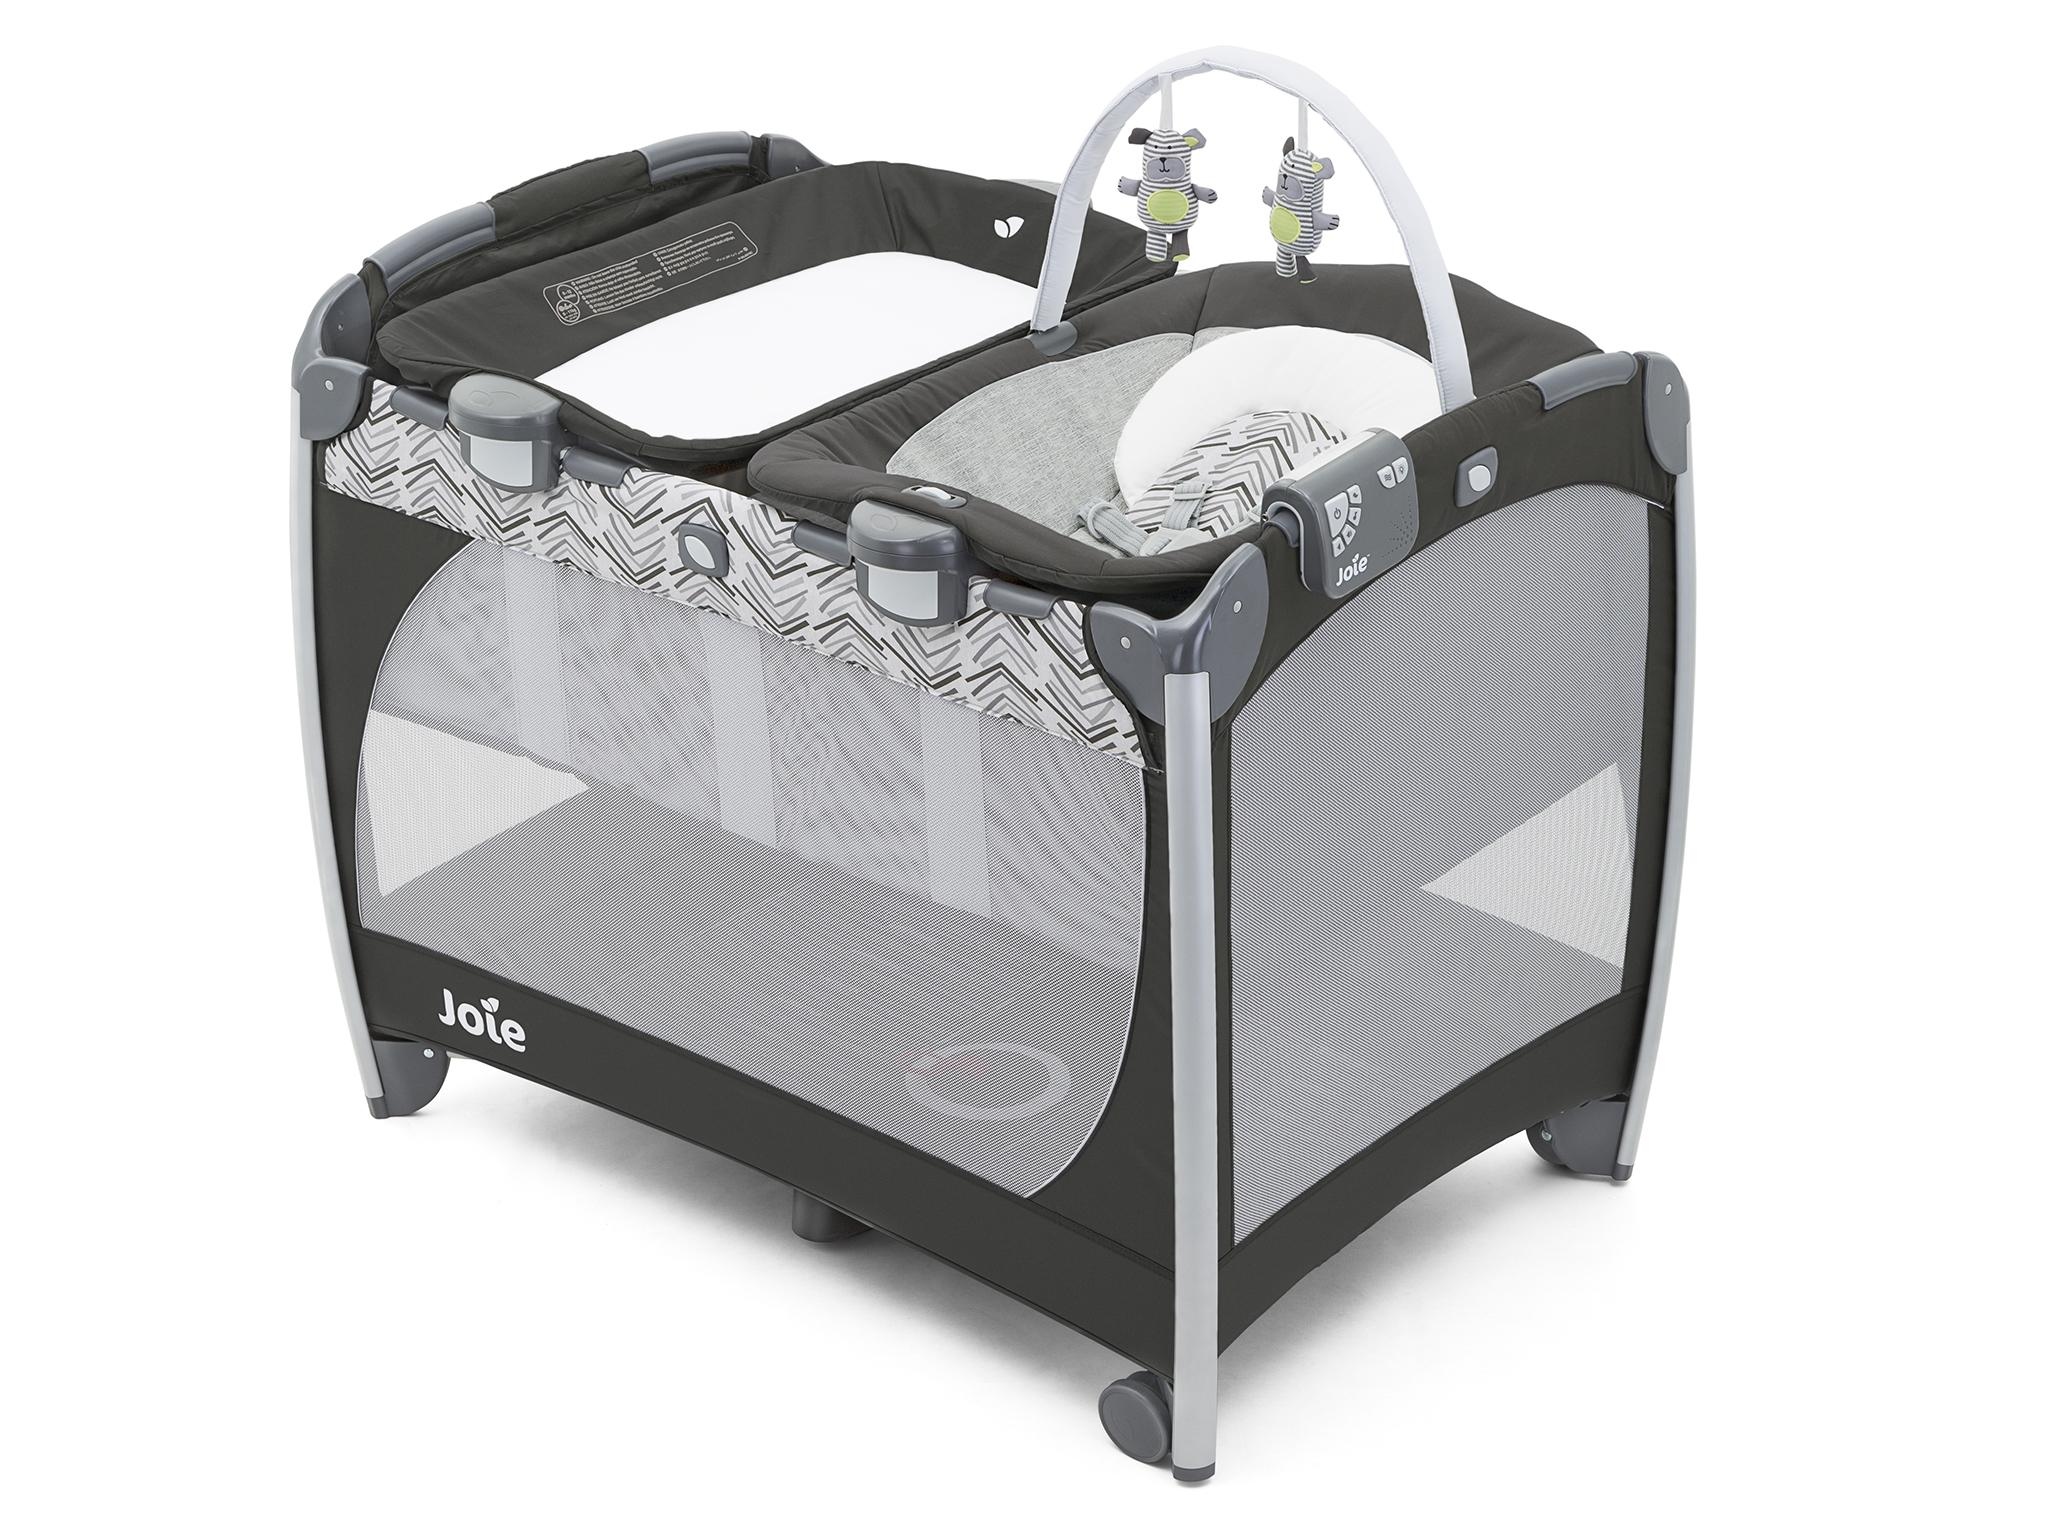 This is a lot more than just a travel cot: it includes a portable changing  unit that can be placed on top of the cot, a bouncy seat with a music (five